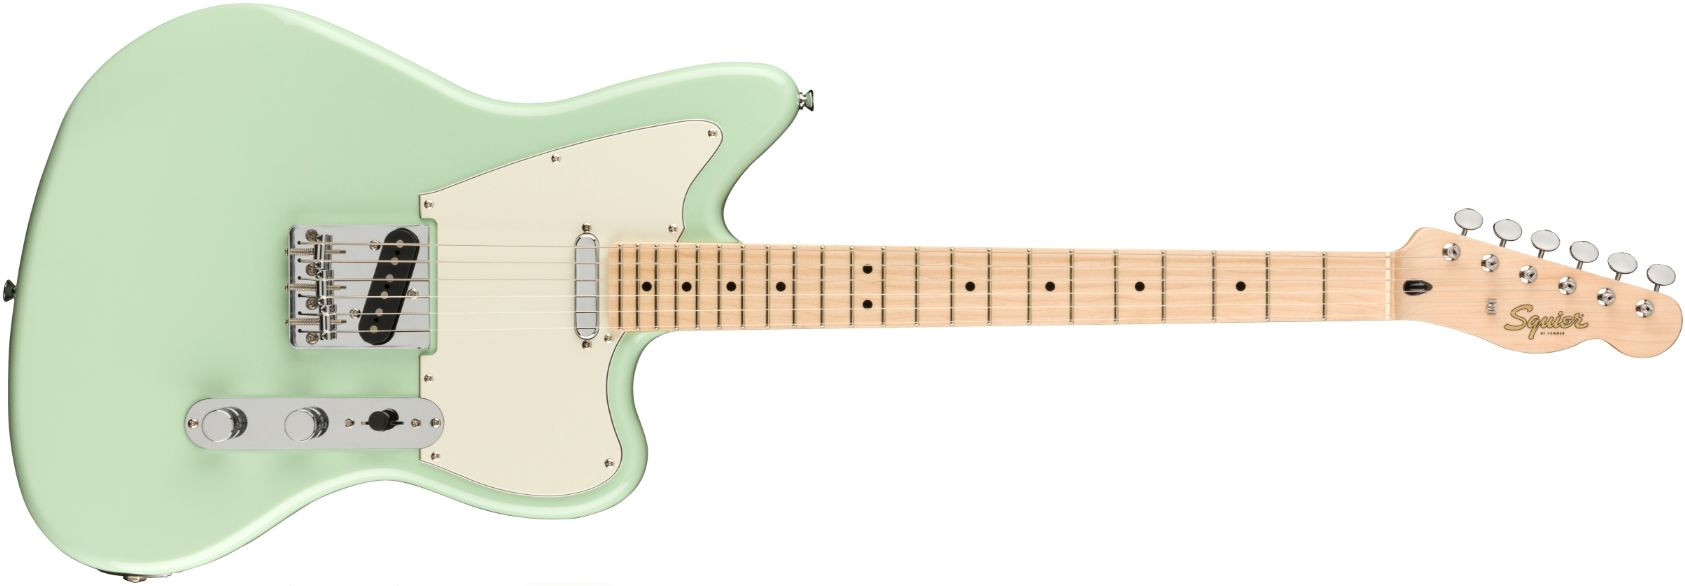 FENDER SQUIER Paranormal Offset Telecaster Surf Green Maple